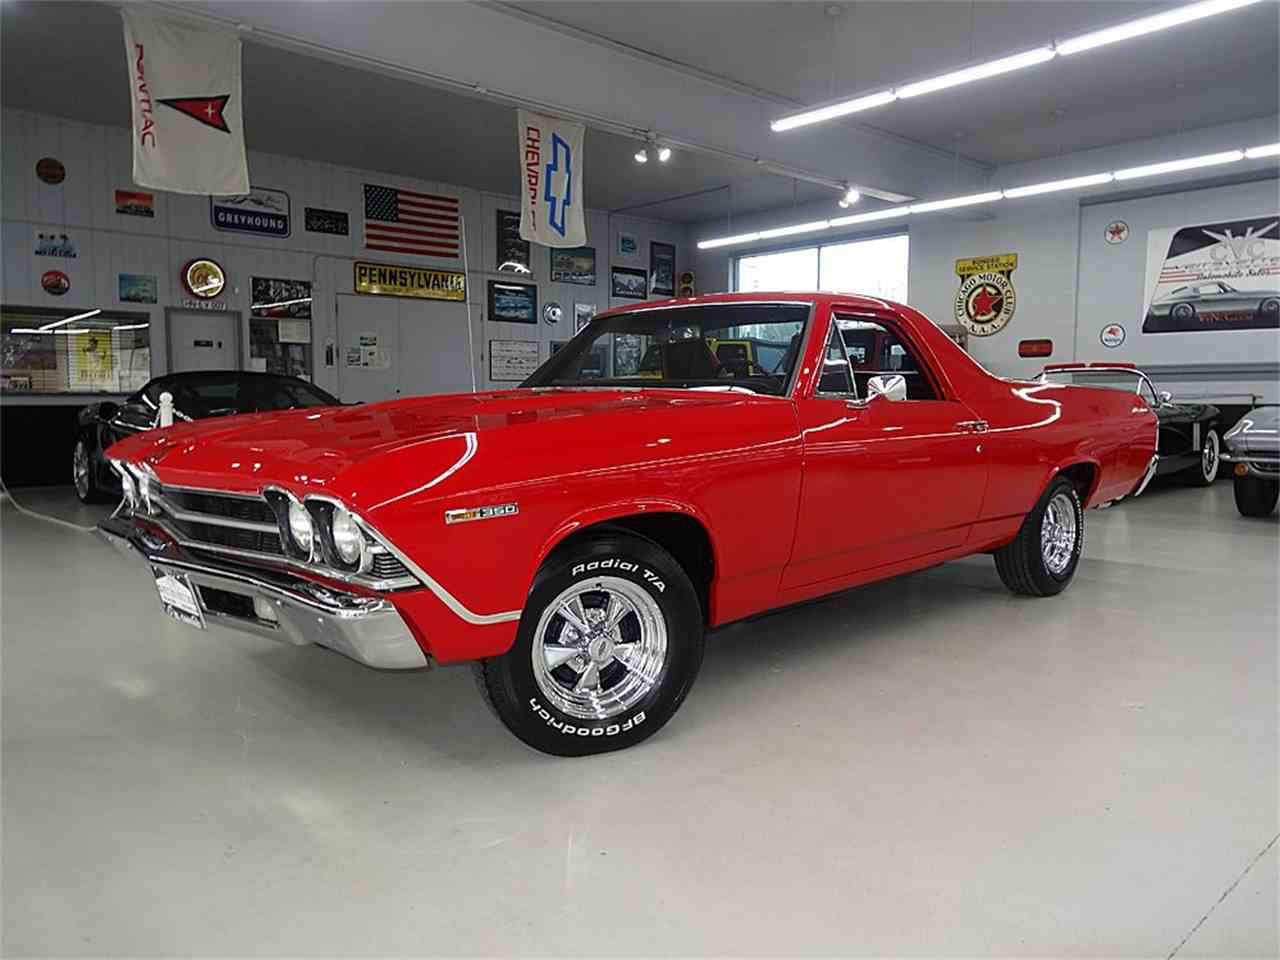 1969 chevrolet el camino frame off restored for sale. Black Bedroom Furniture Sets. Home Design Ideas